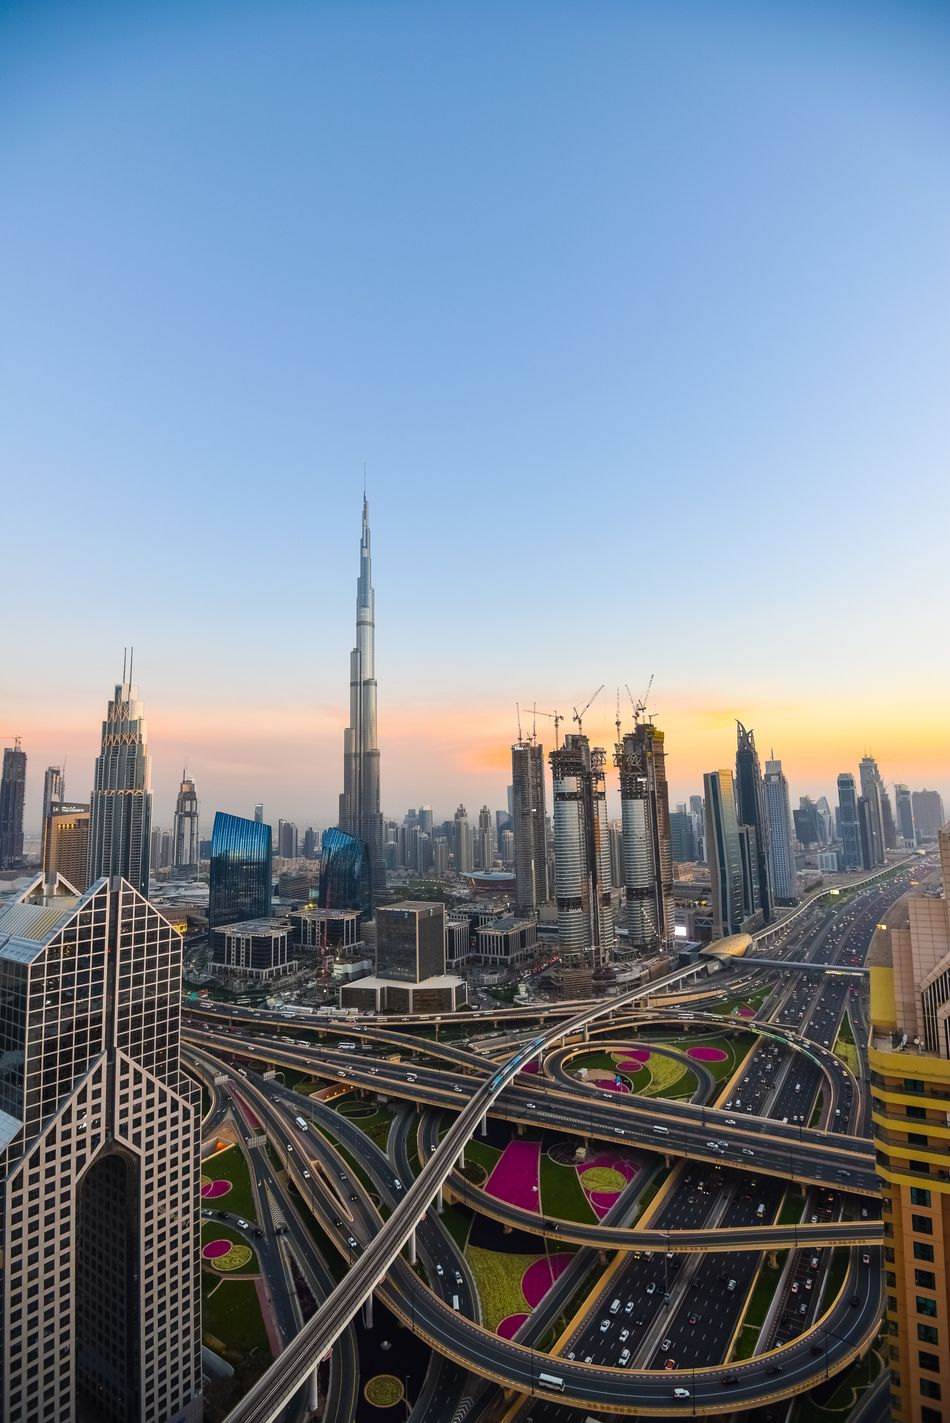 I've always loved the architecture of Dubai City Building Exterior Architecture Cityscape Dubai City Life Travel Destinations Urban Skyline Road Sunset Tower First Eyeem Photo The Secret Spaces